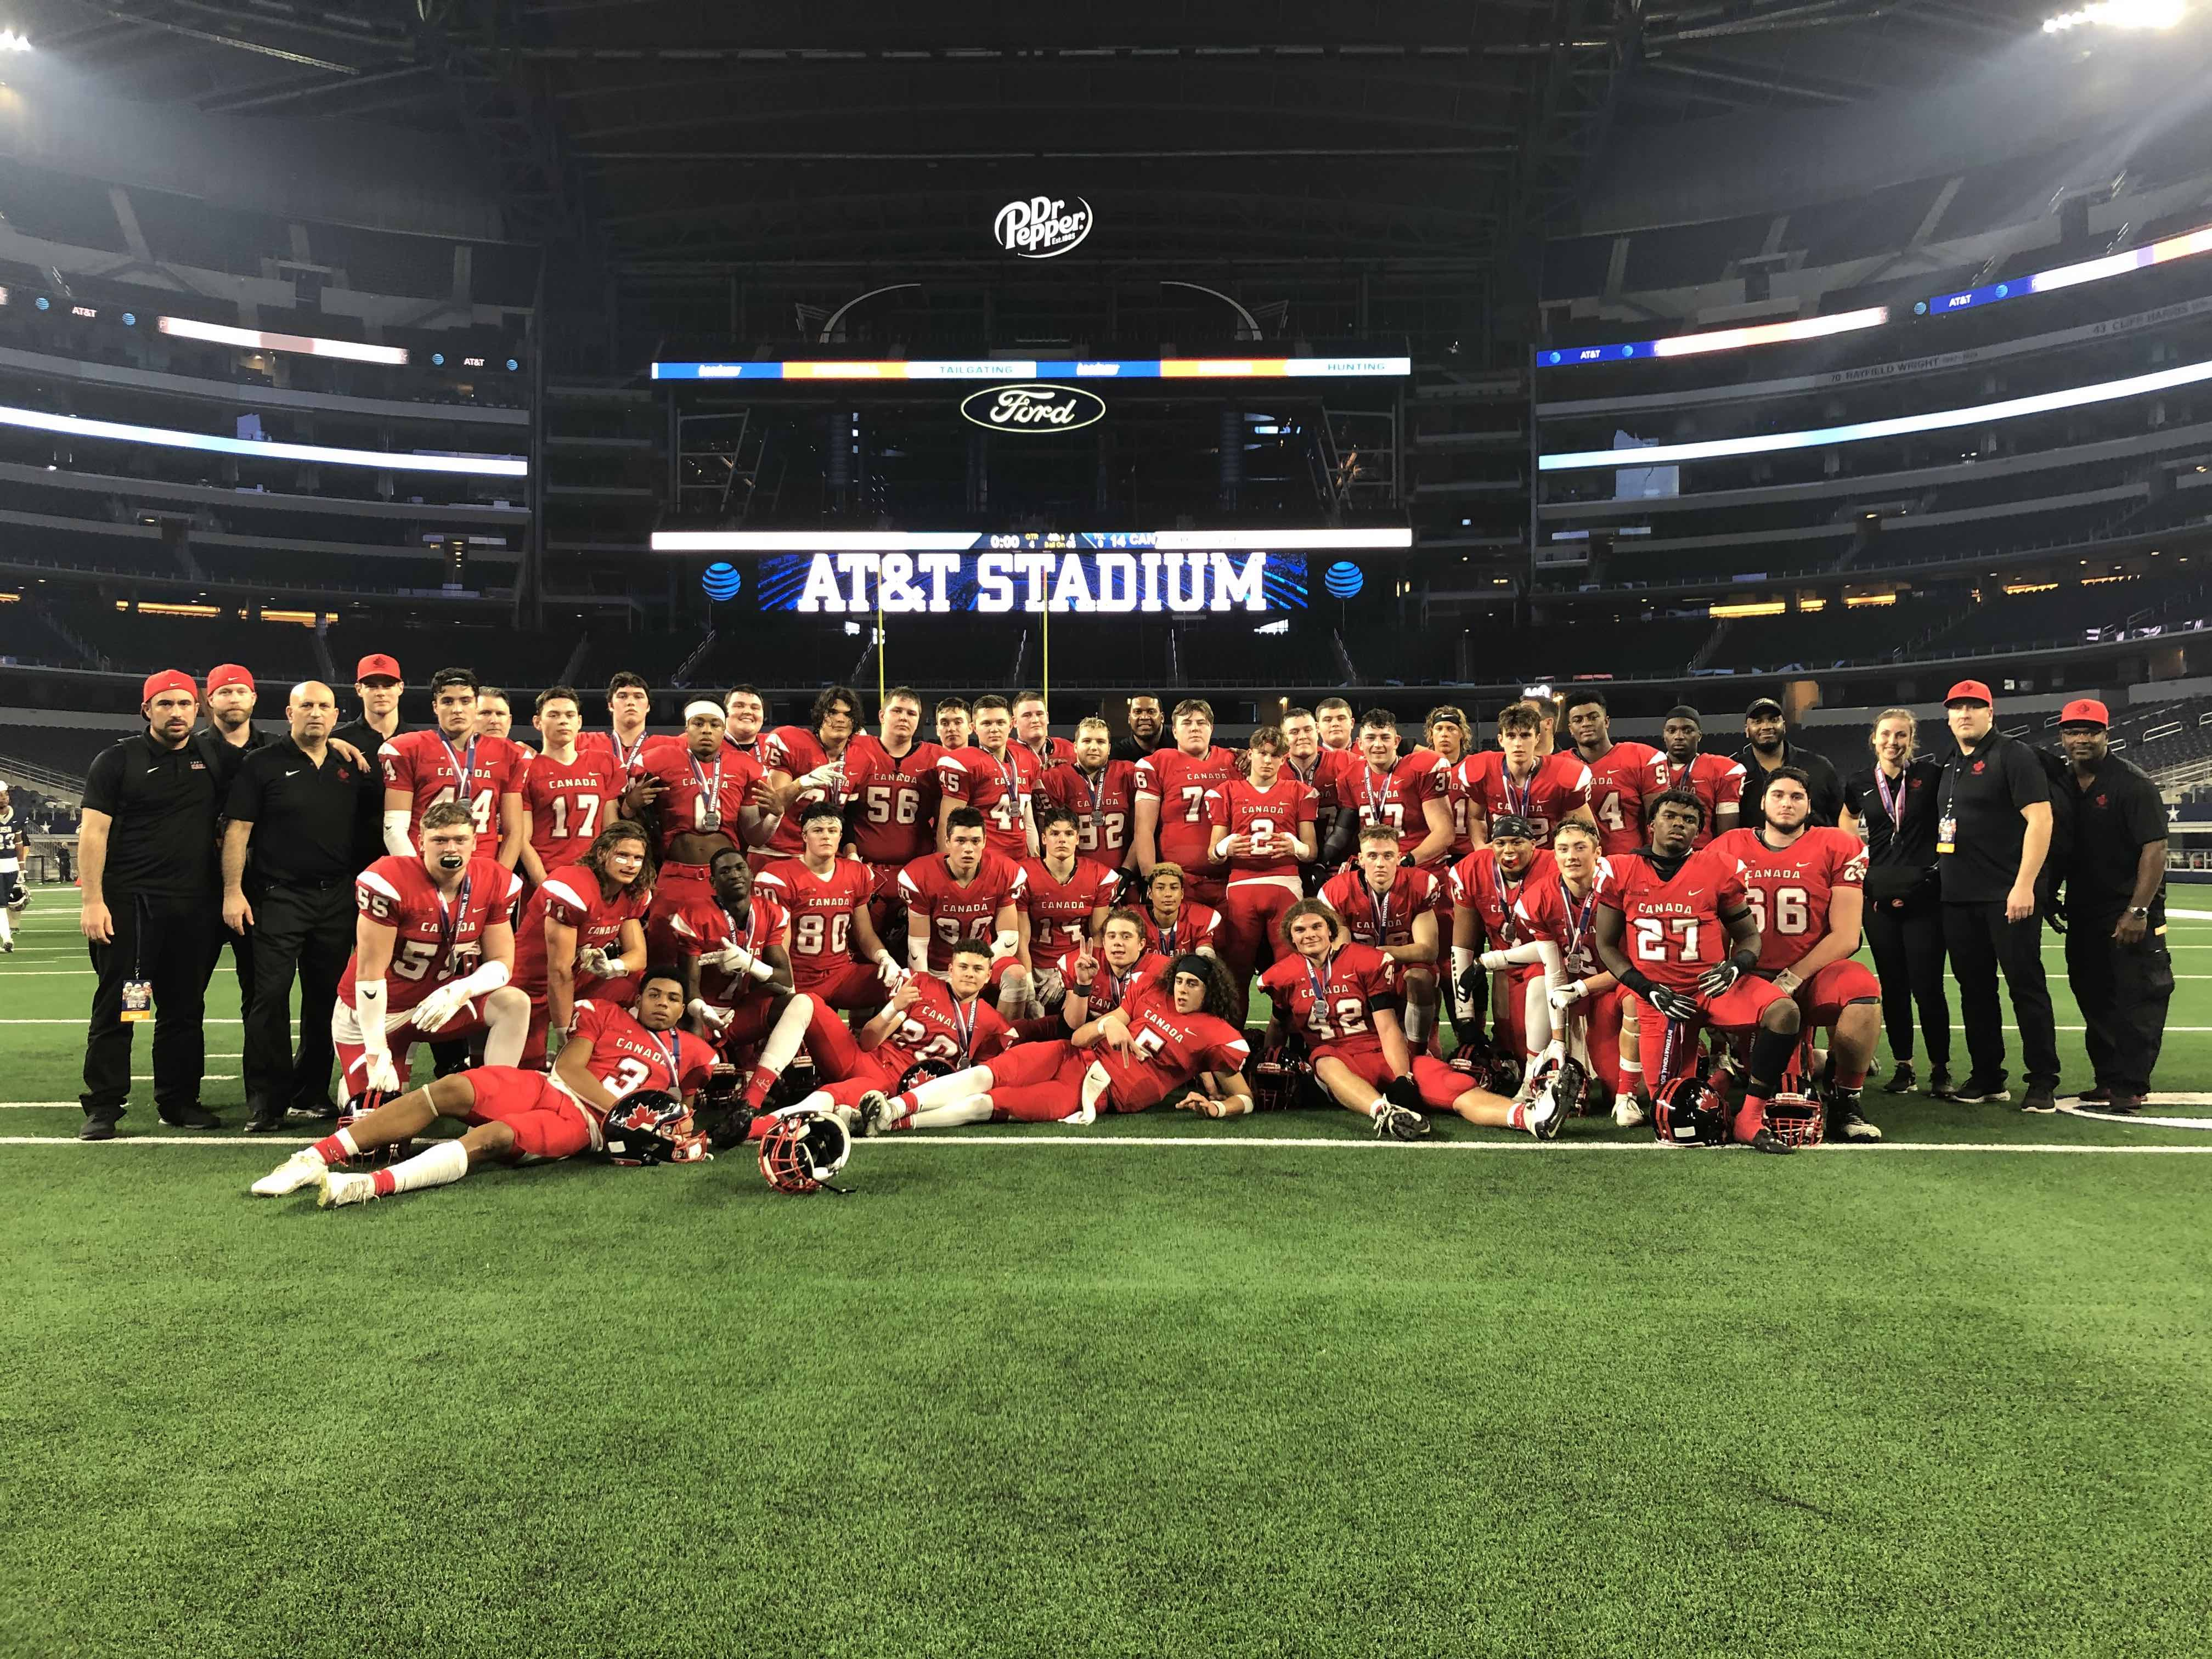 Canada's under-18 national team falls to the United States at 2020 International Bowl